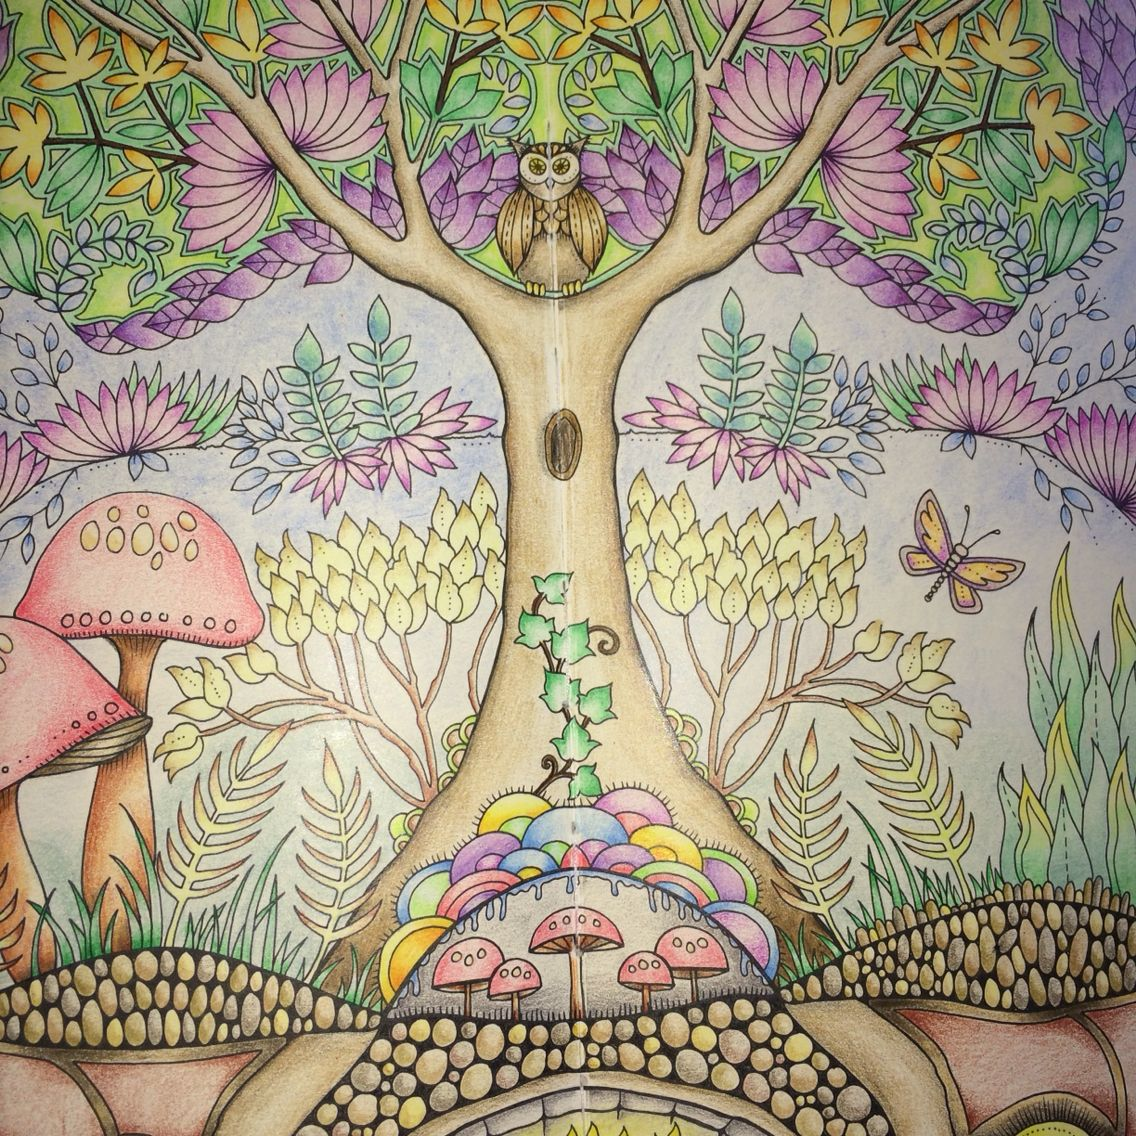 Completed Enchanted Forest In Colouring Book By Joanna Basford Using Derwent Coloursoft Pencils Joannabasford Enchantedforest